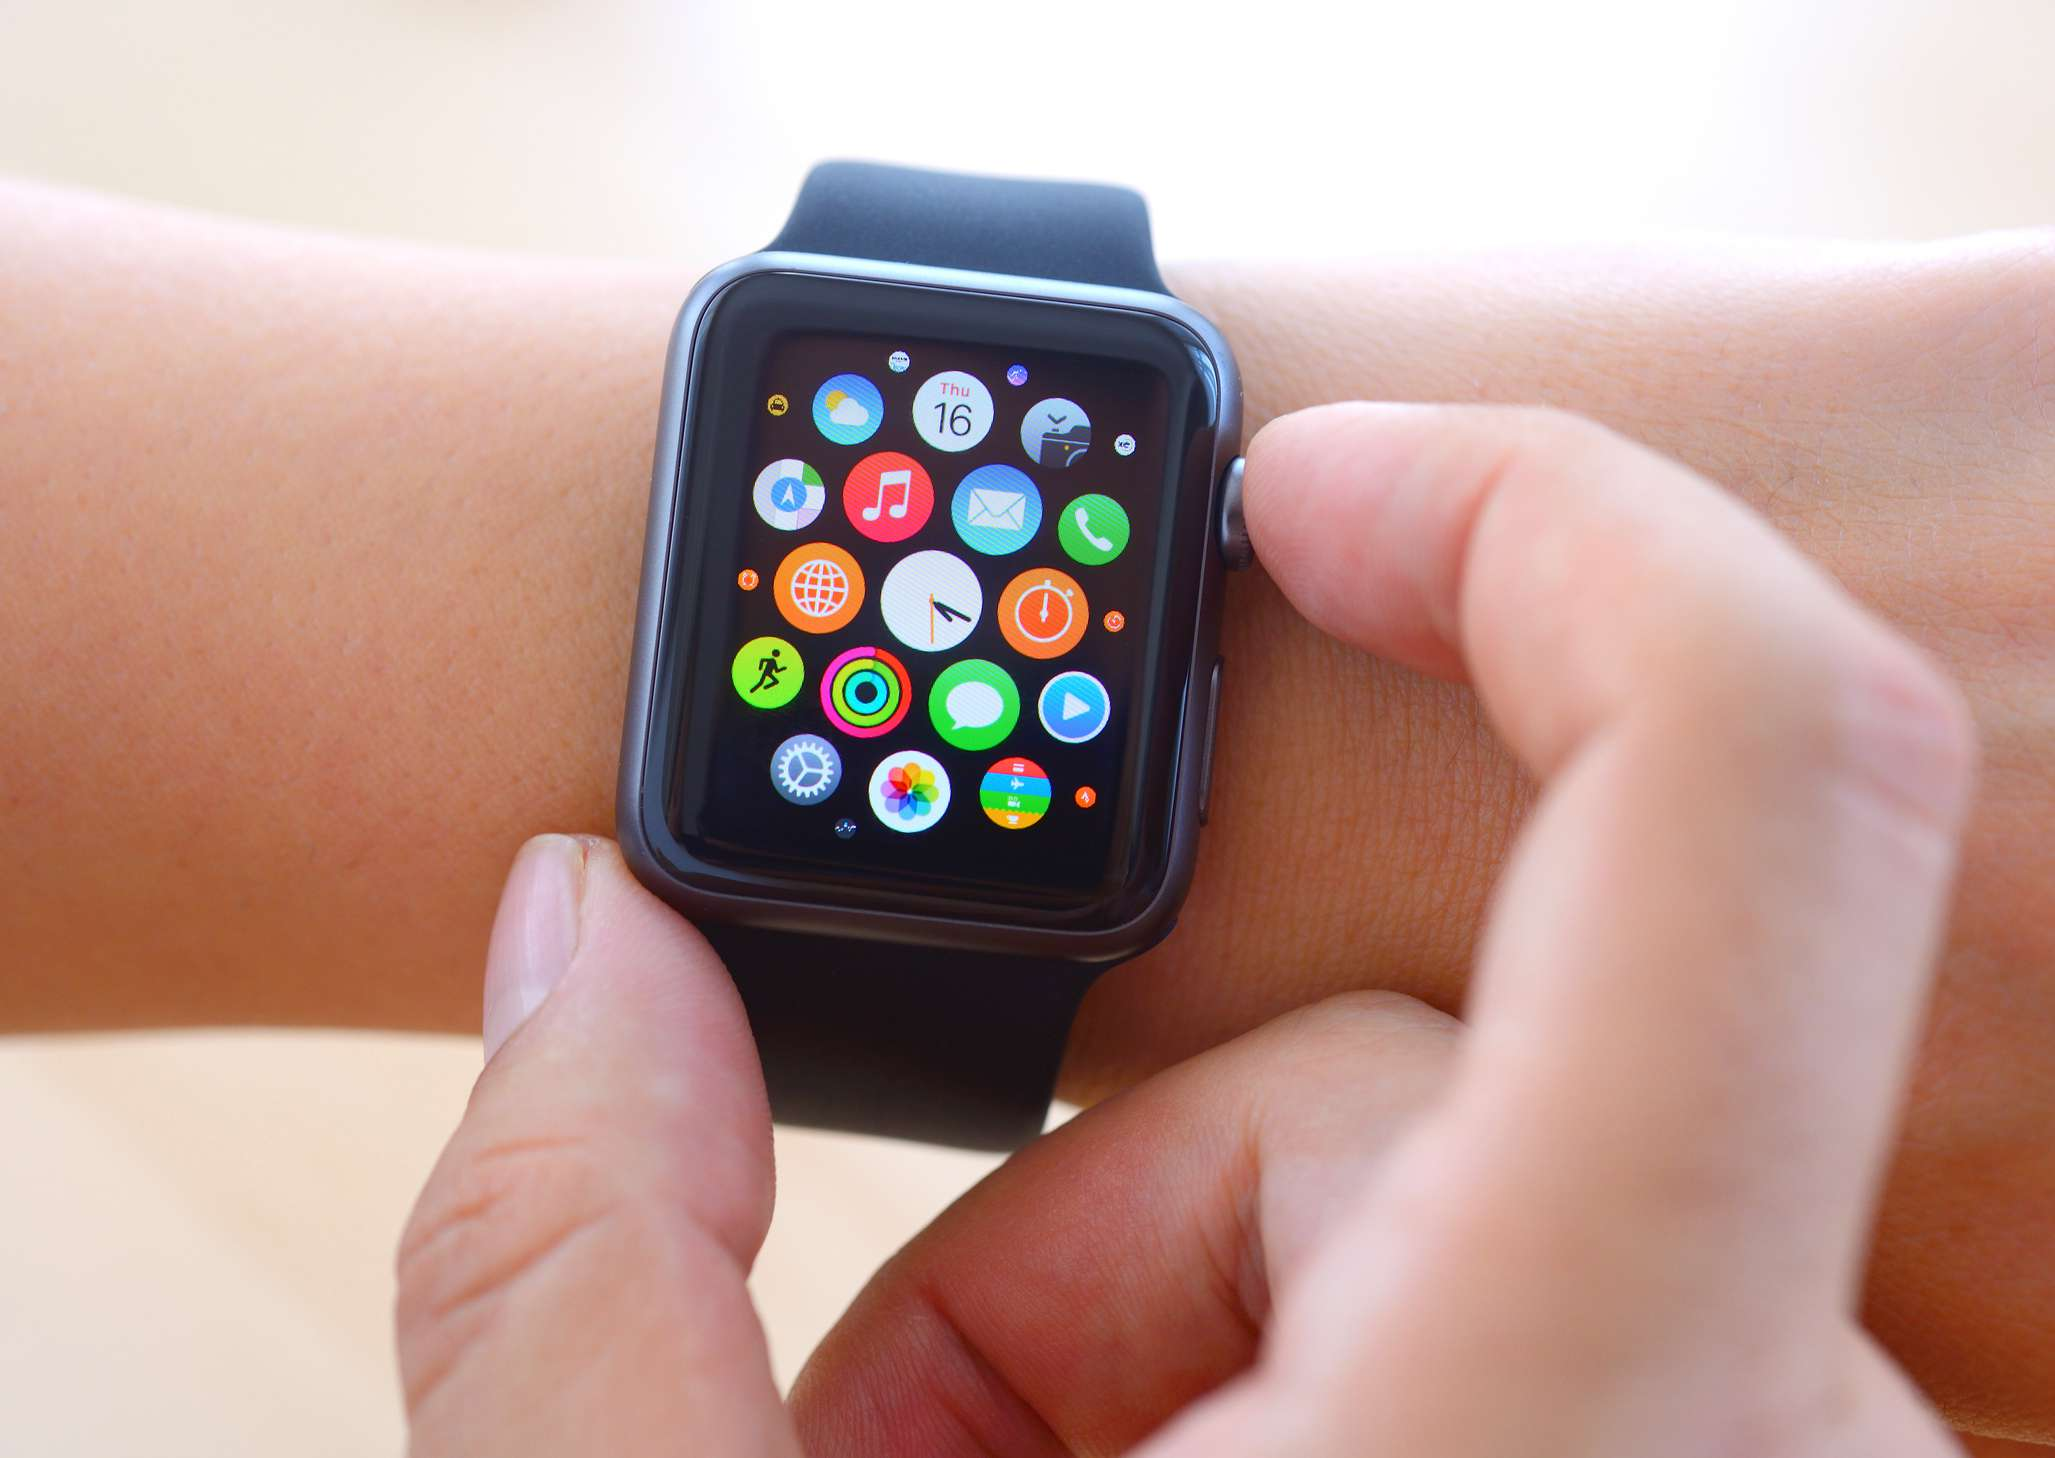 Using Black Apple Watch Sport and checking to see what the Apple Care warranty status is